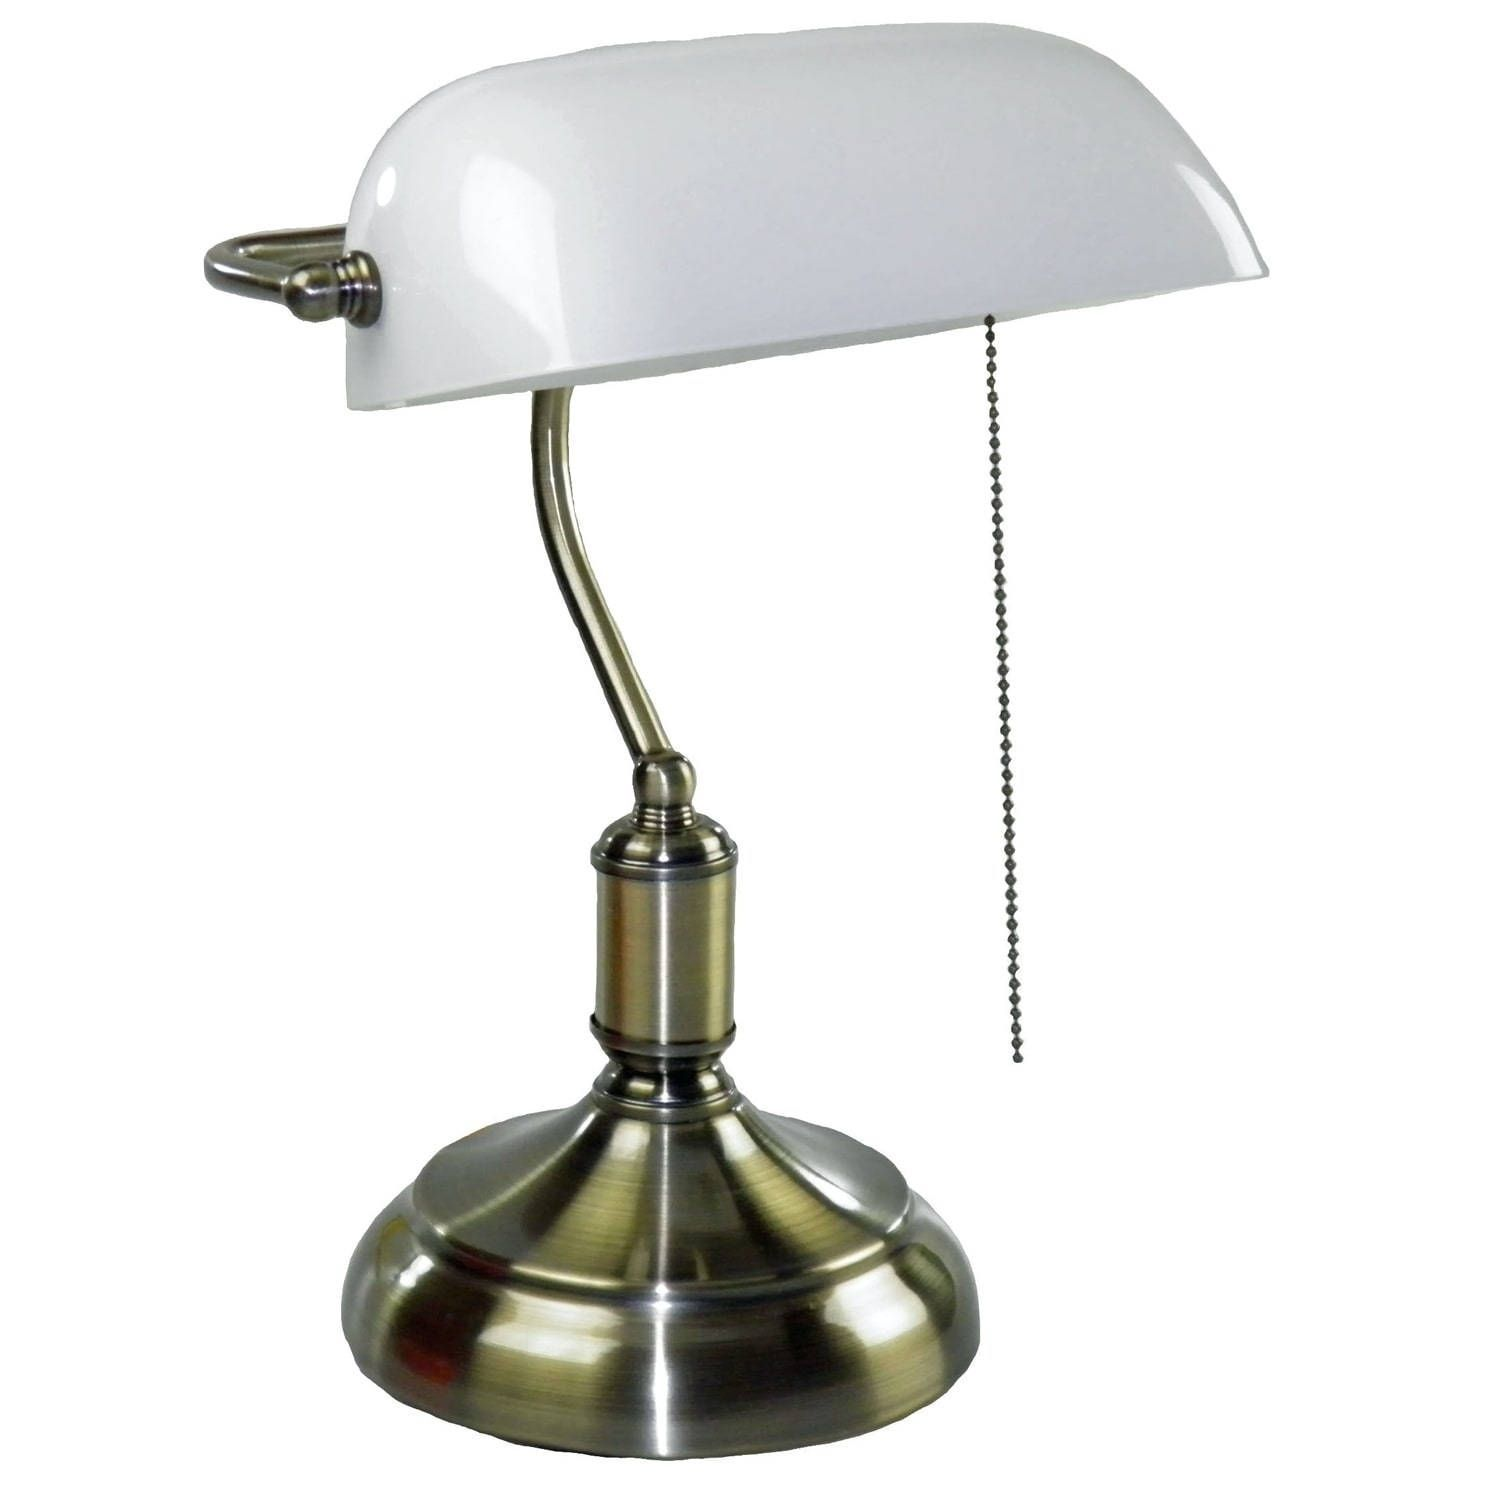 of full glassbankers marbled banker greenbanker depotbankers bluebankers pictures white lampsbankers glass traditional size deskps bankers shade desk tag staggering green office lamp lamps concept tags